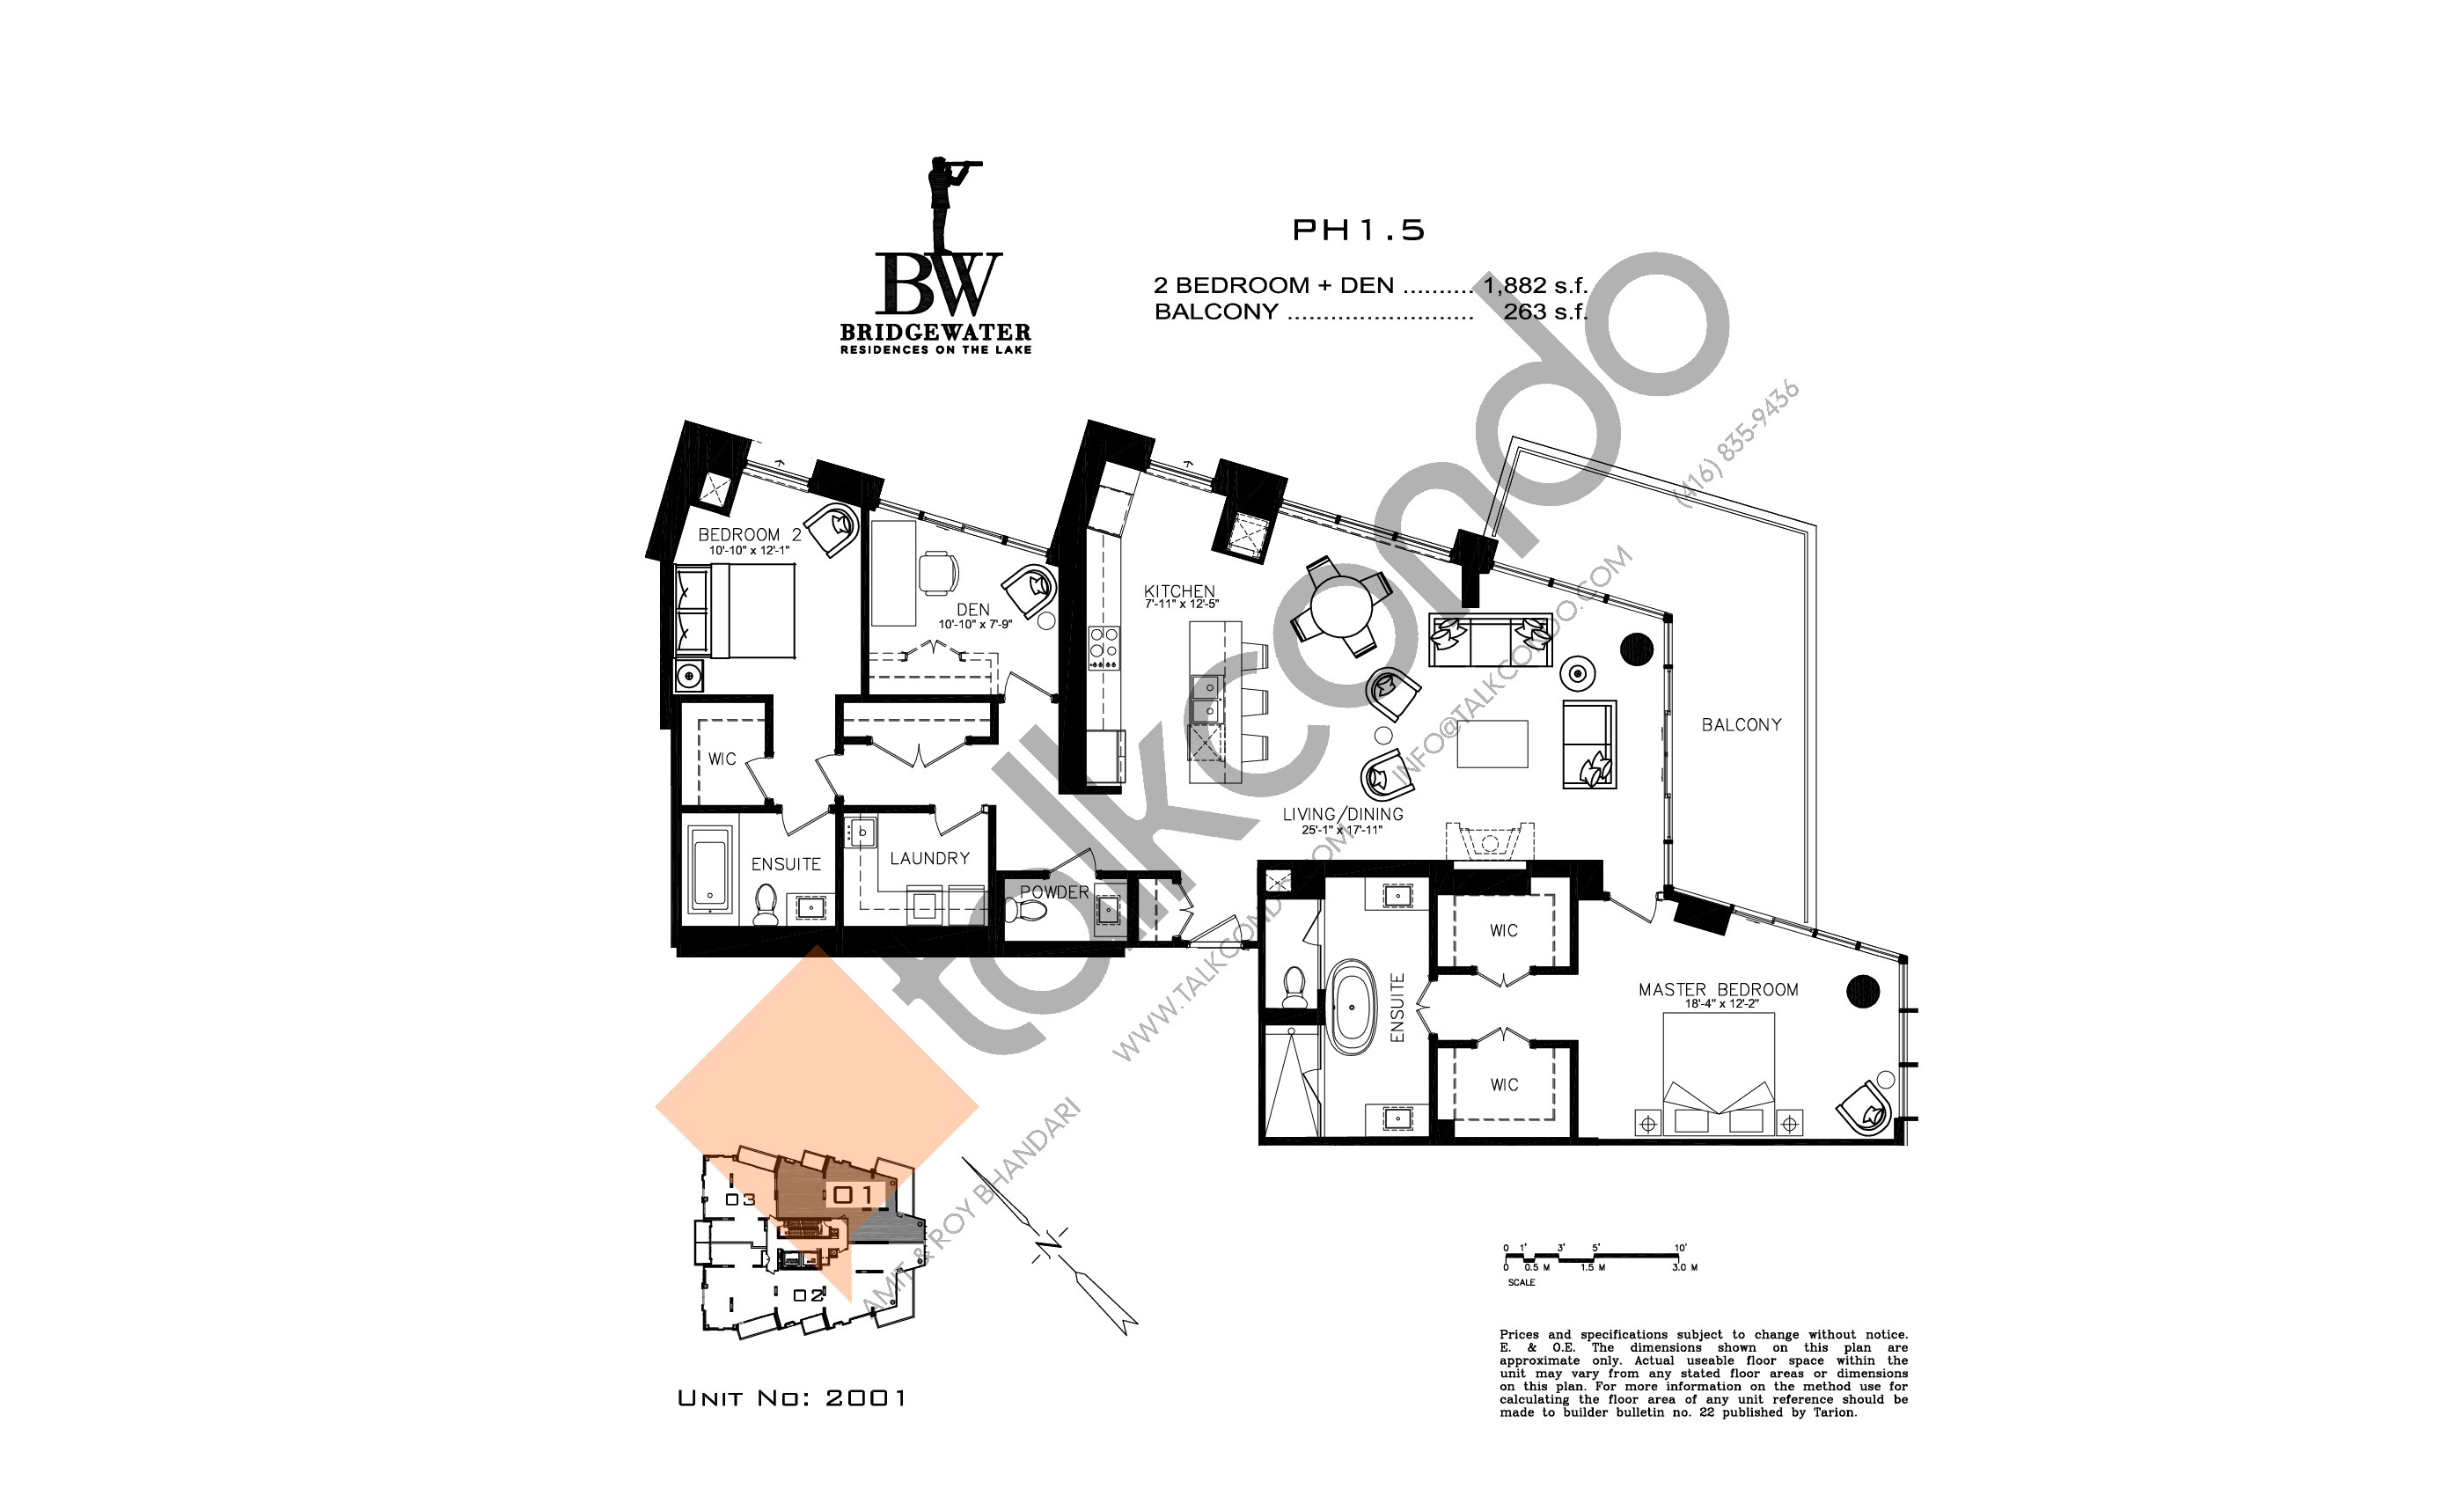 Unit 2001 Floor Plan at Bridgewater Residences on the Lake Condos - 1882 sq.ft